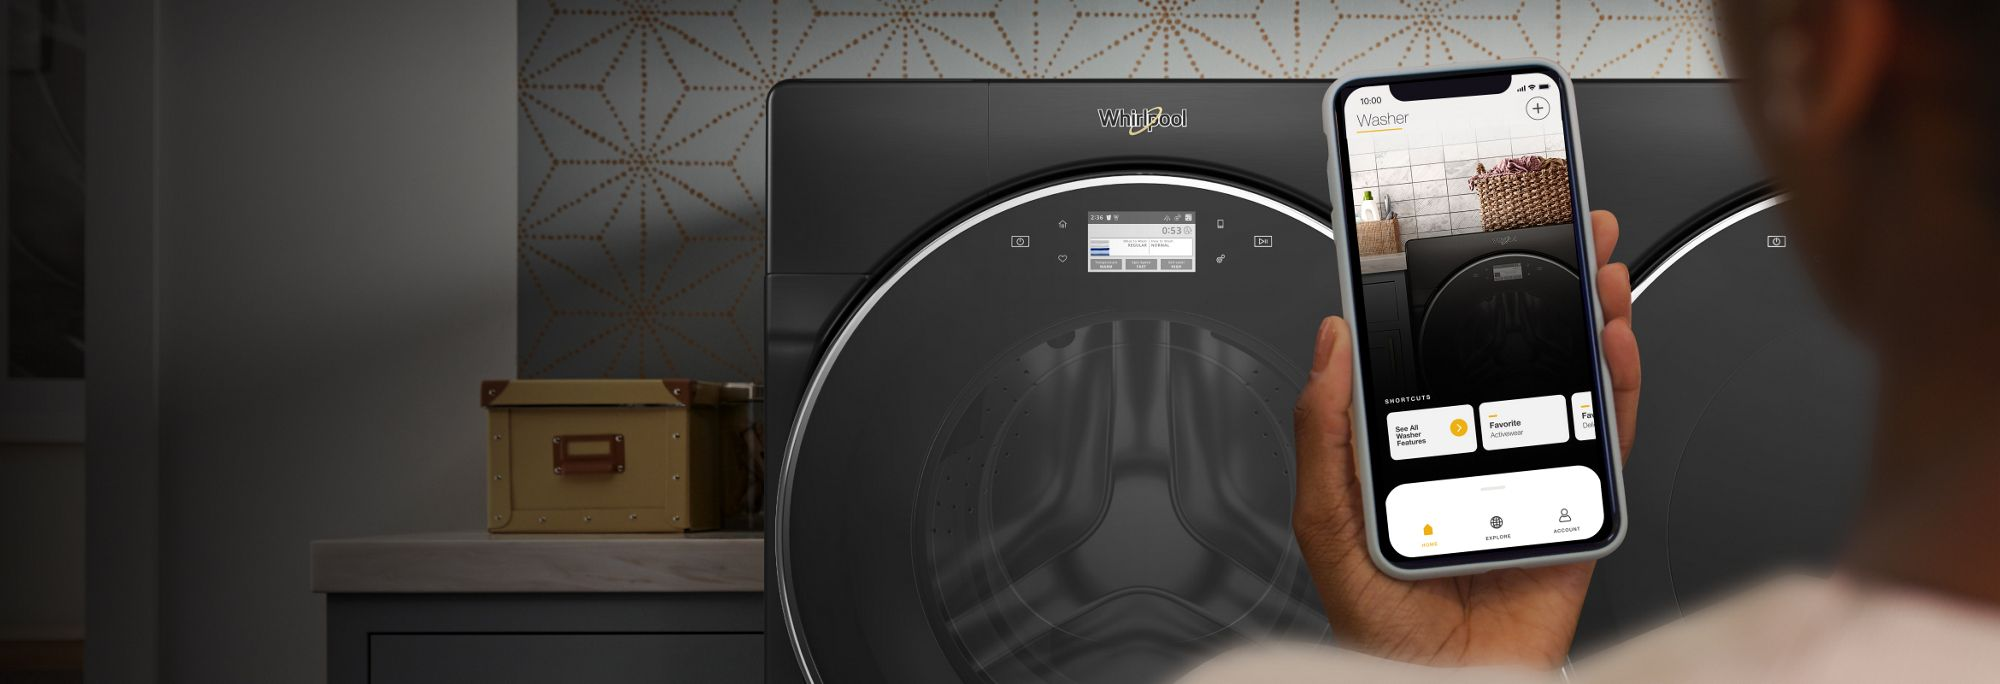 Smartphone with My Home screen in the Whirlpool® App in front of laundry pair